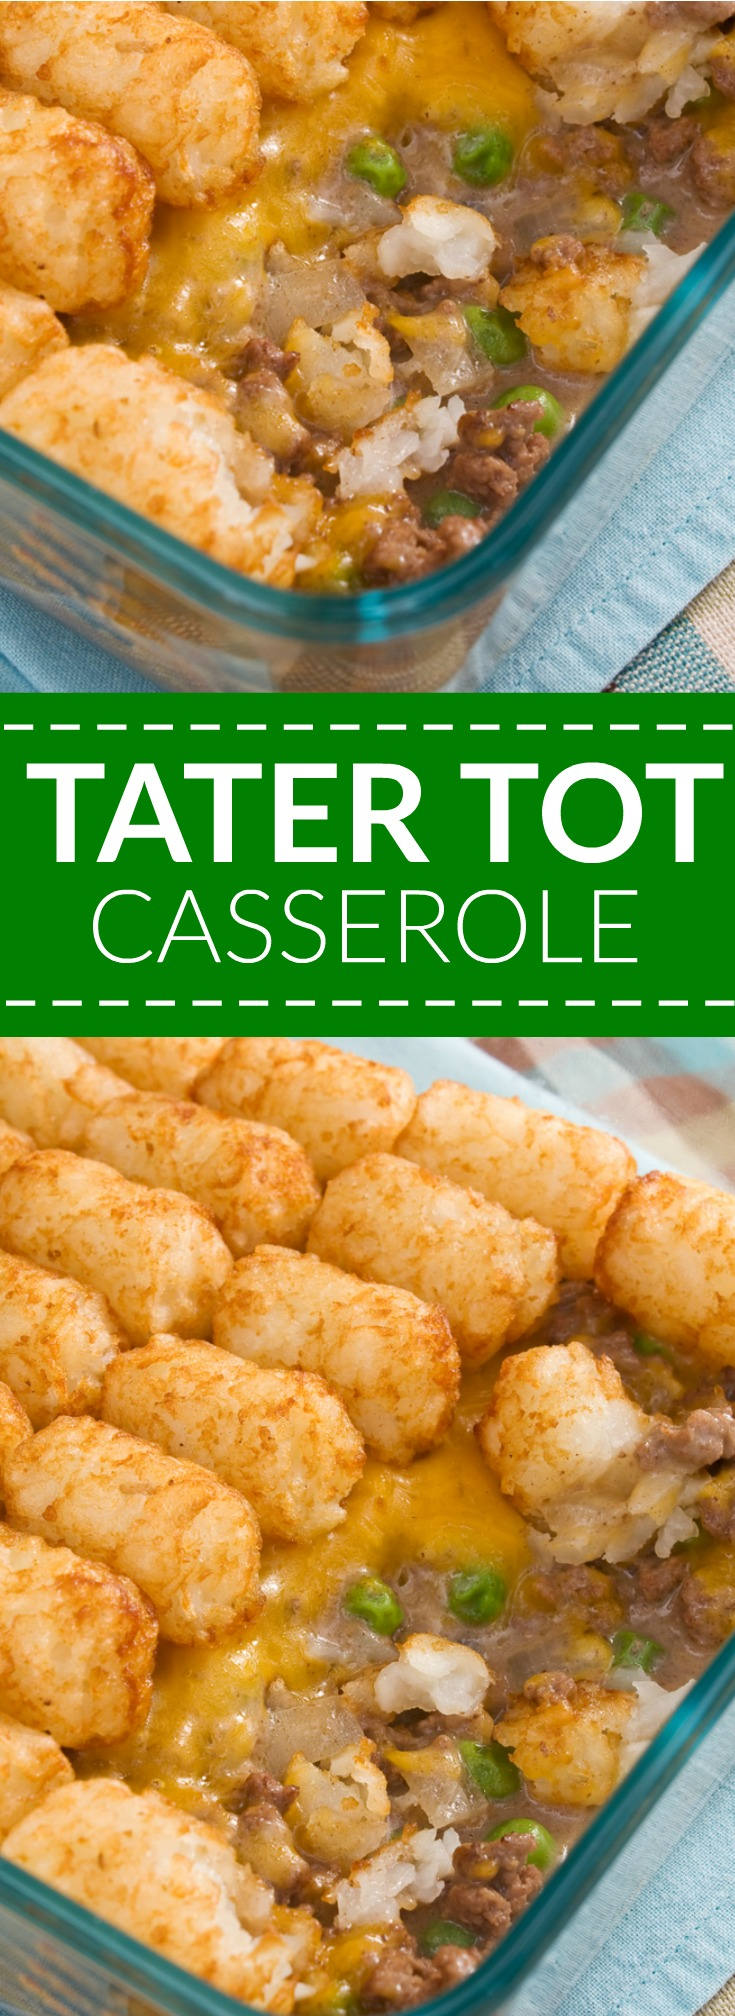 Tater Tot Casserole Recipe with gluten free options